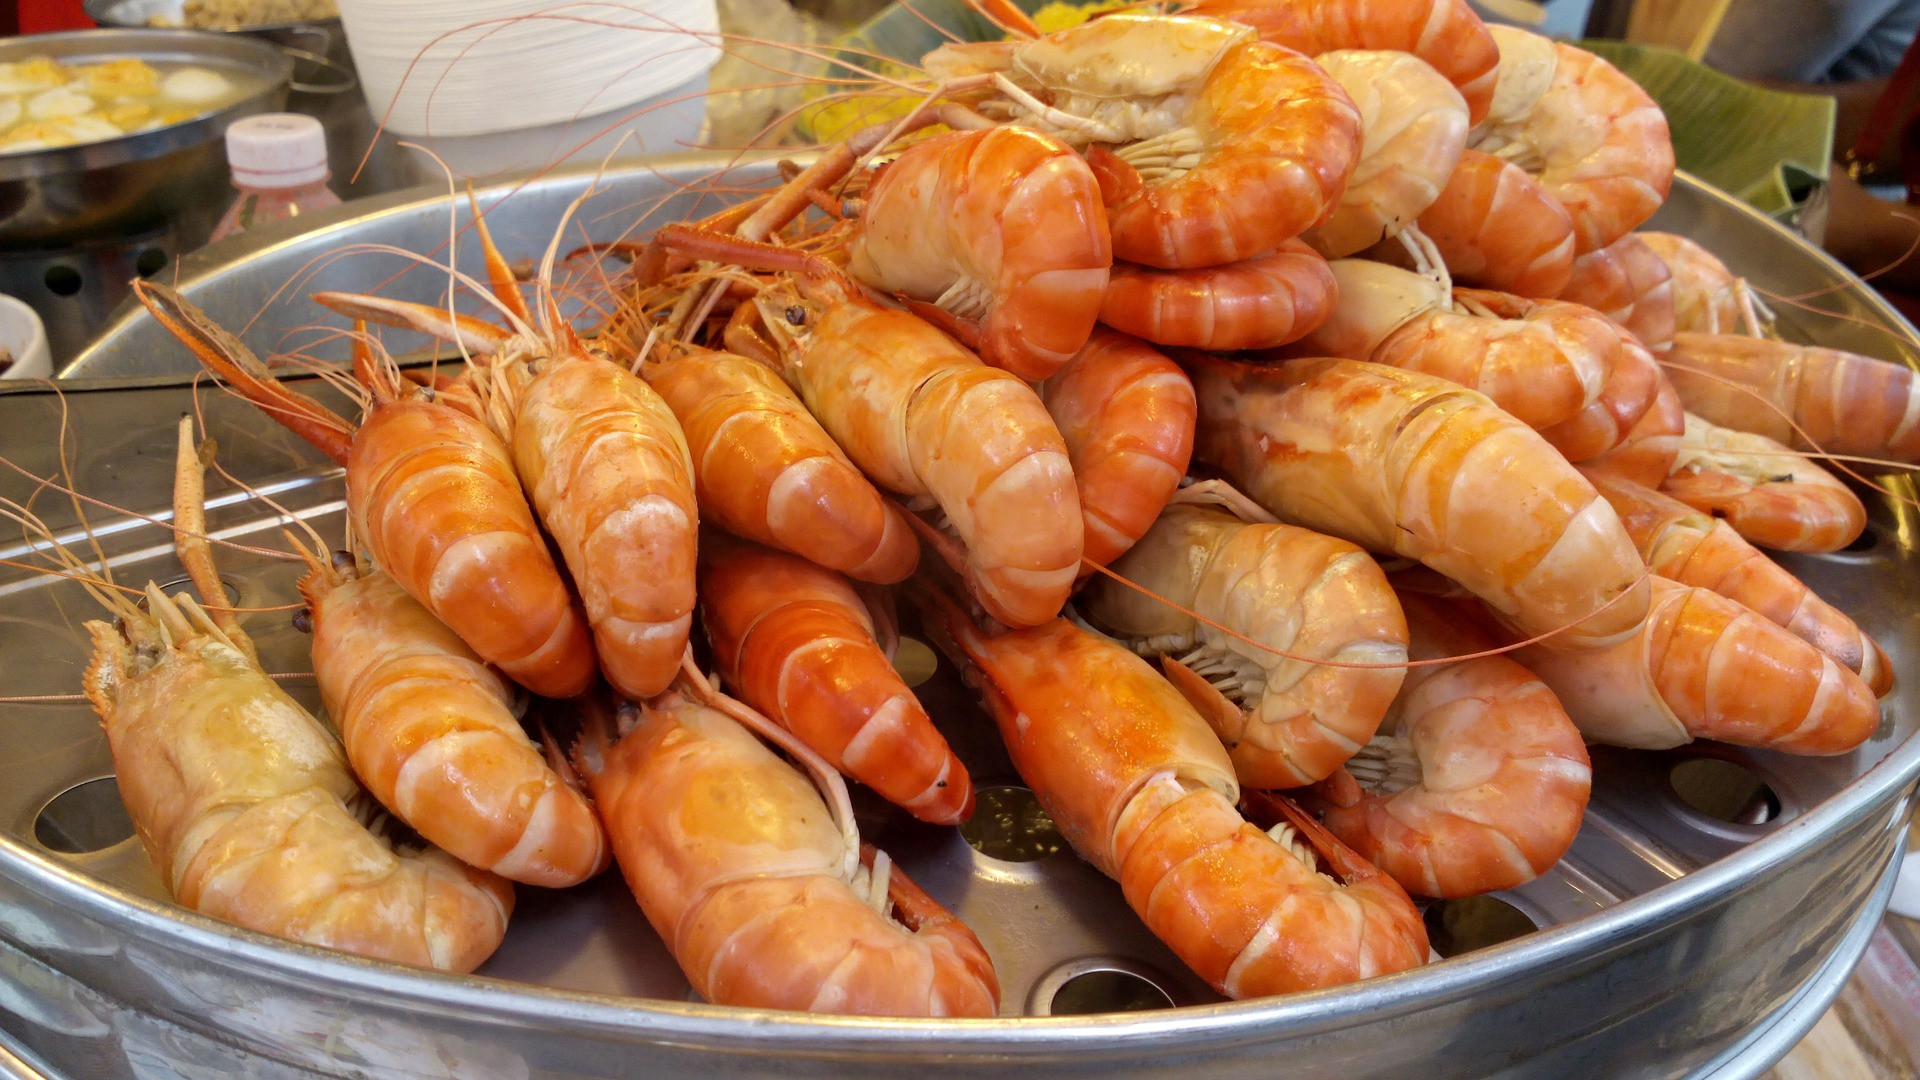 The global shrimp market is huge—can businesses profit while still